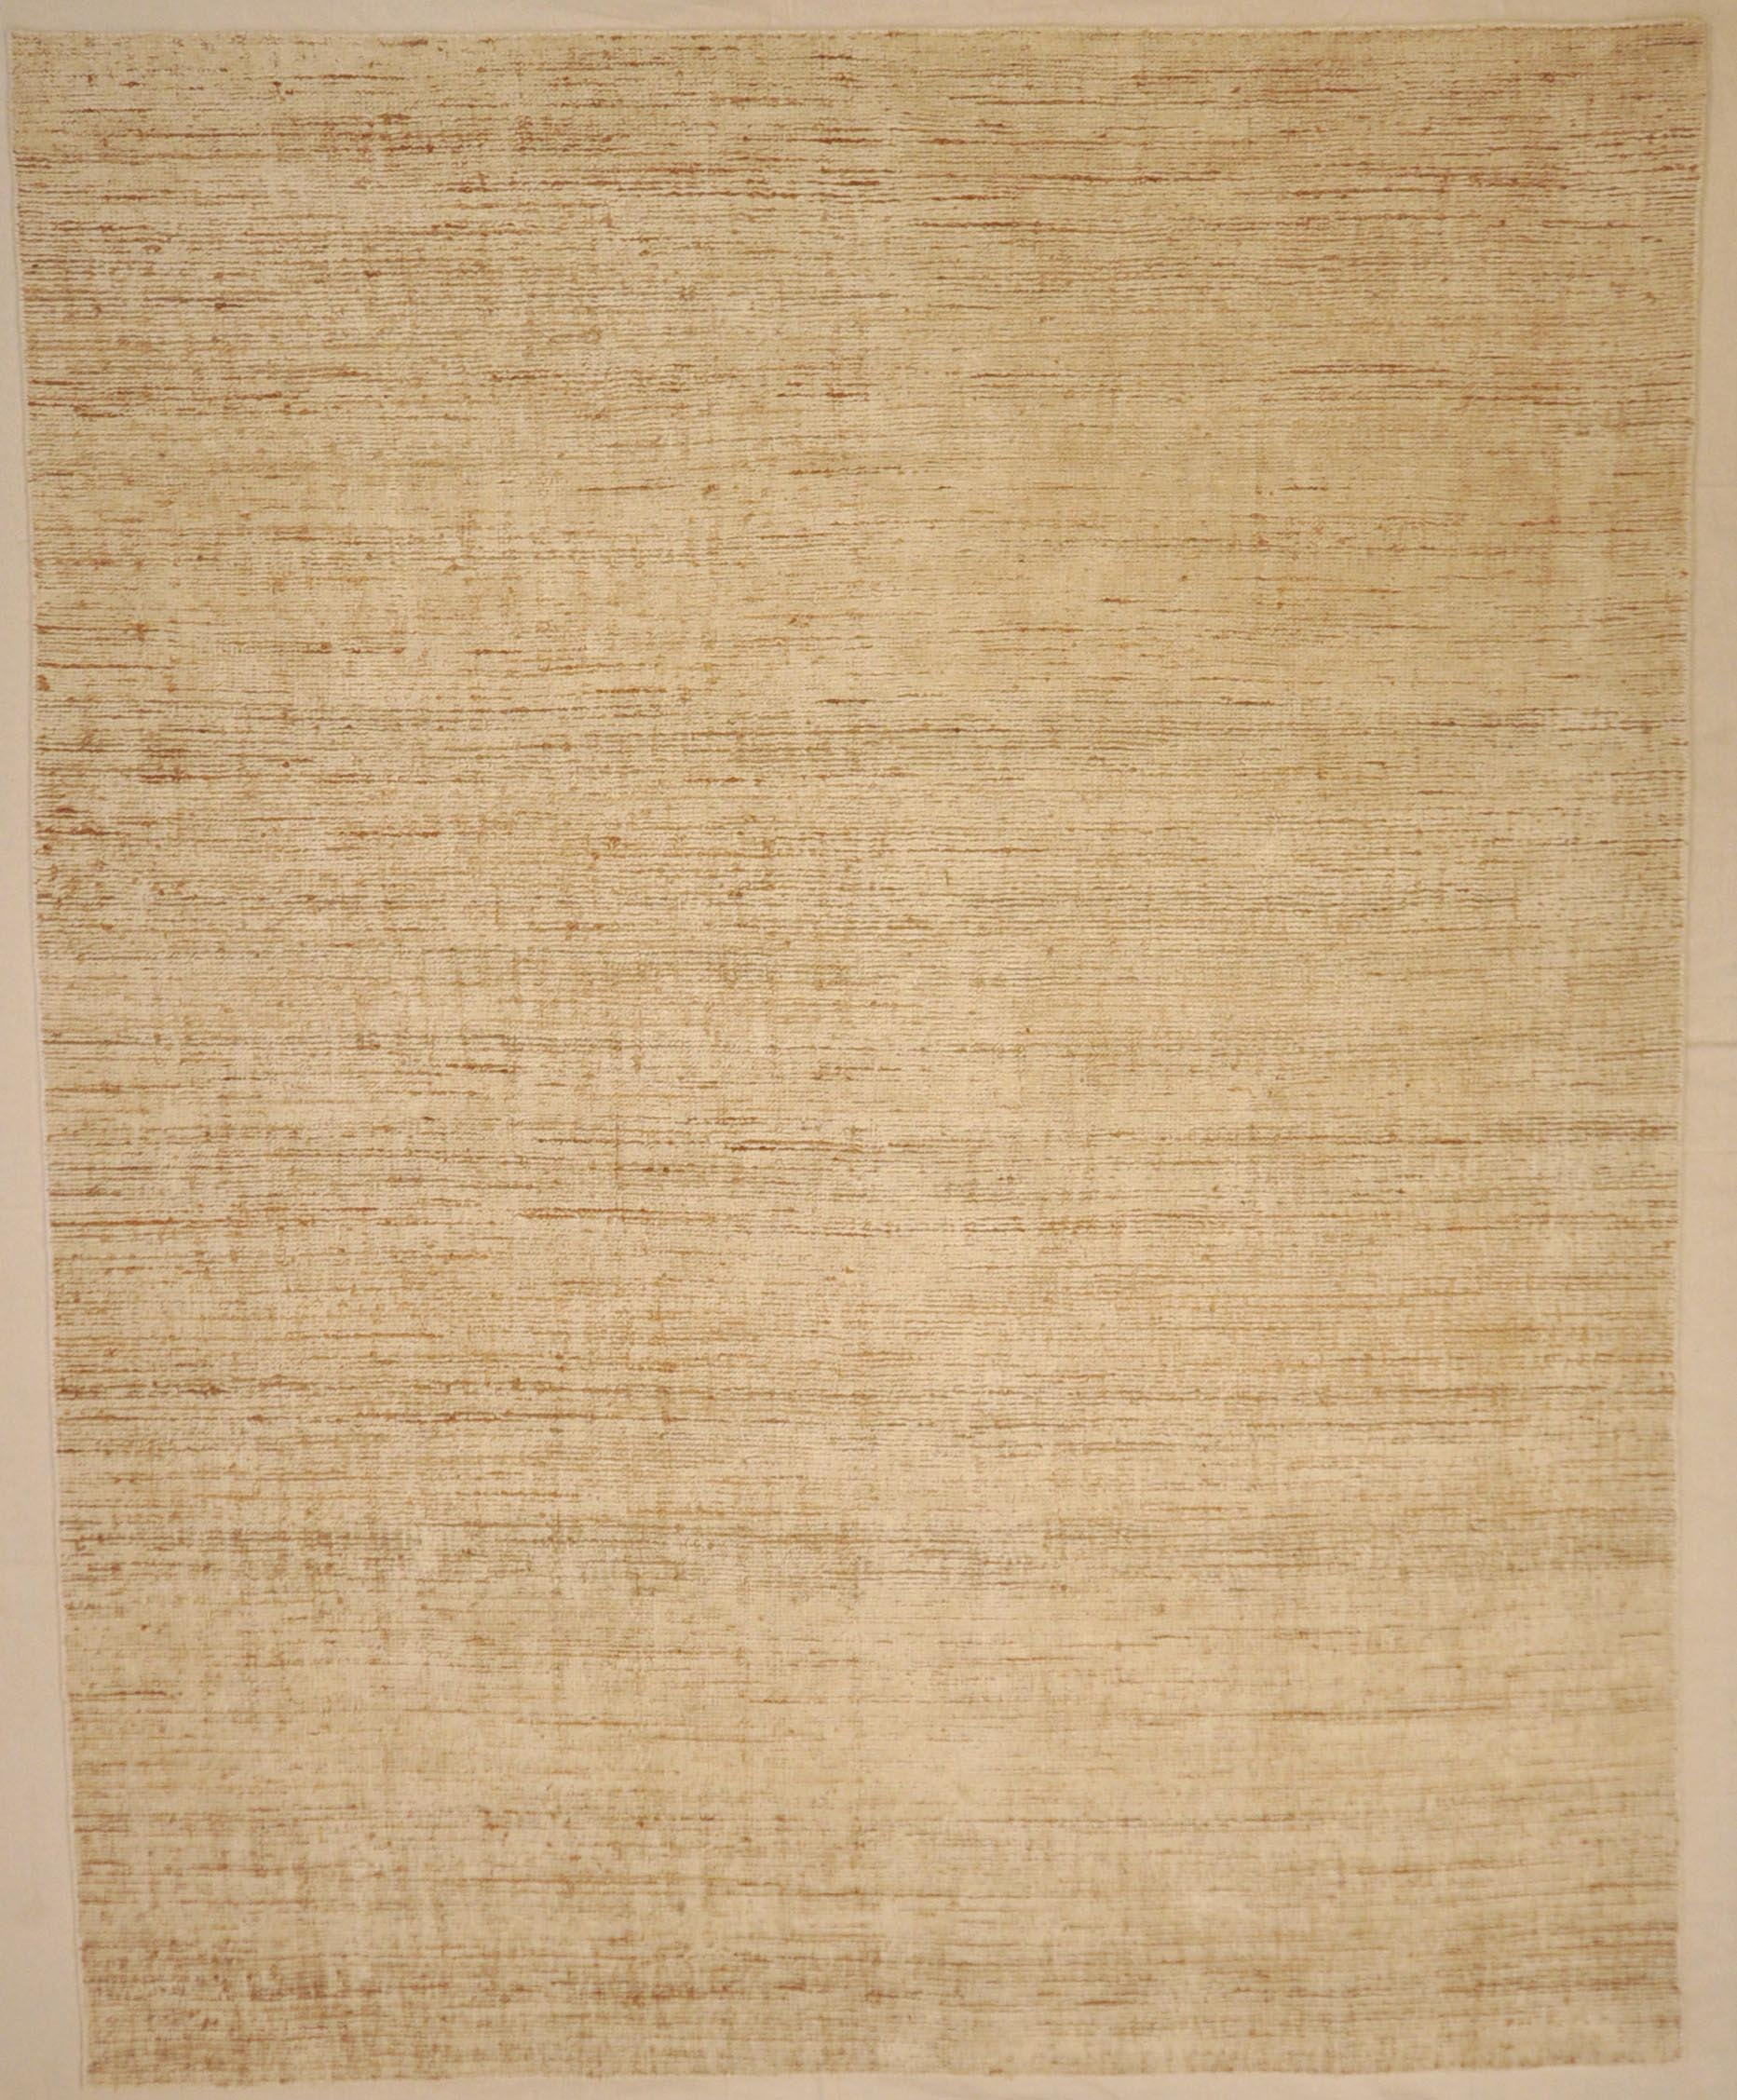 Jute Linen Rug | Rugs & More | Santa Barbara Design Center 32664 6